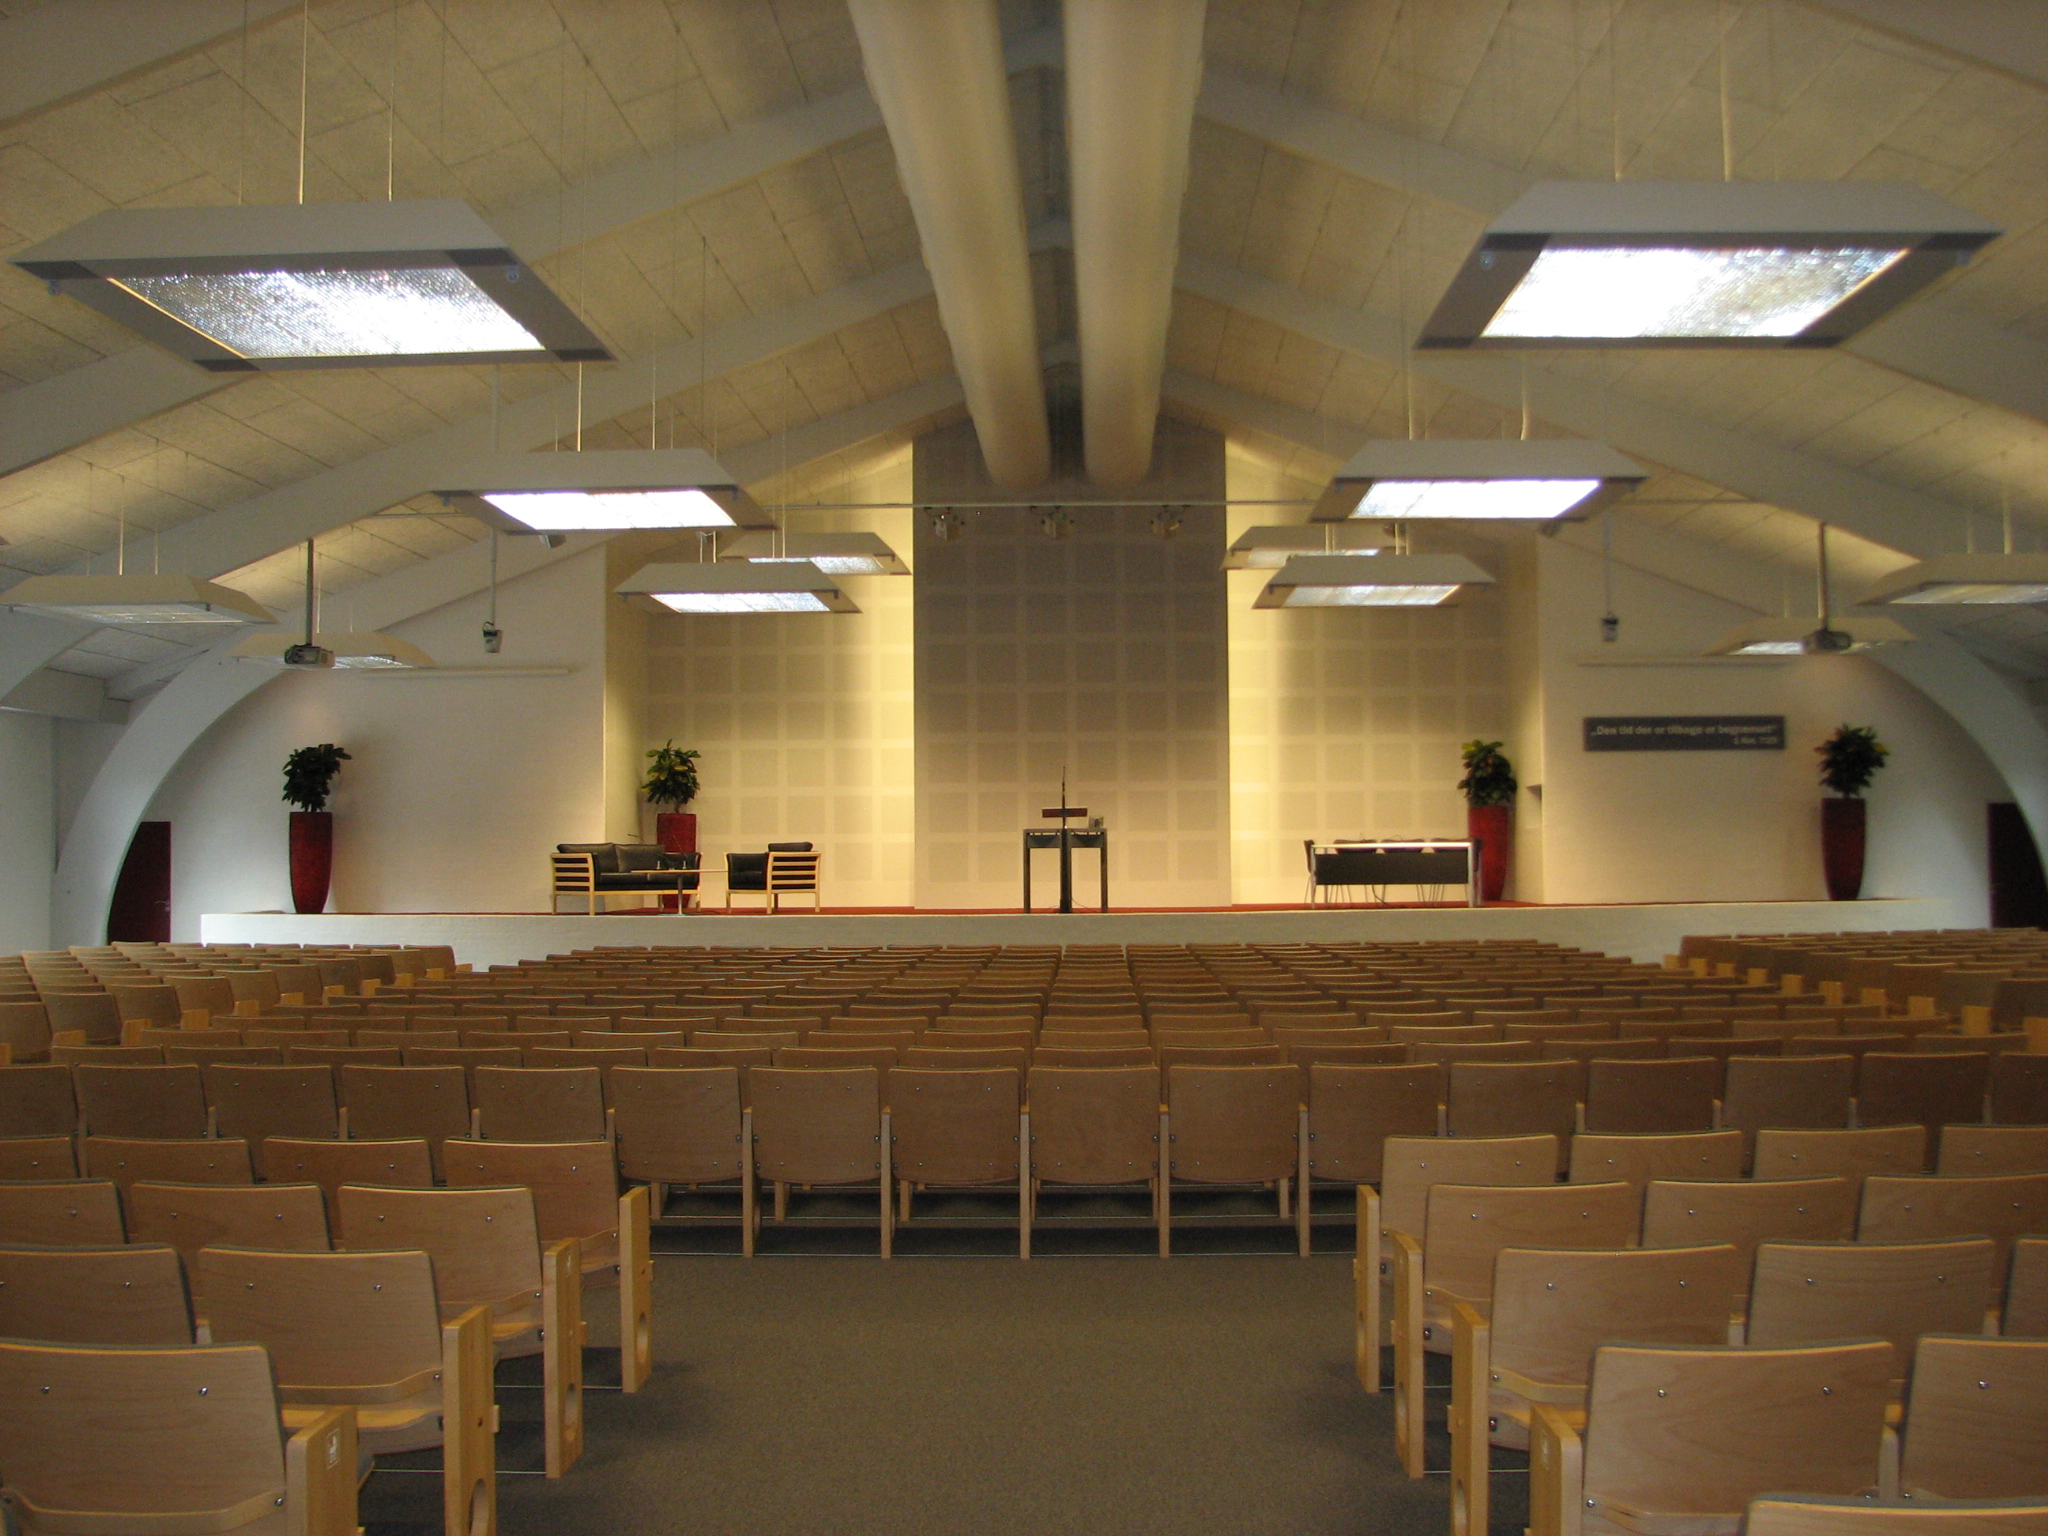 This convention hall of Jehovah's Witnesses has been newly renovated.